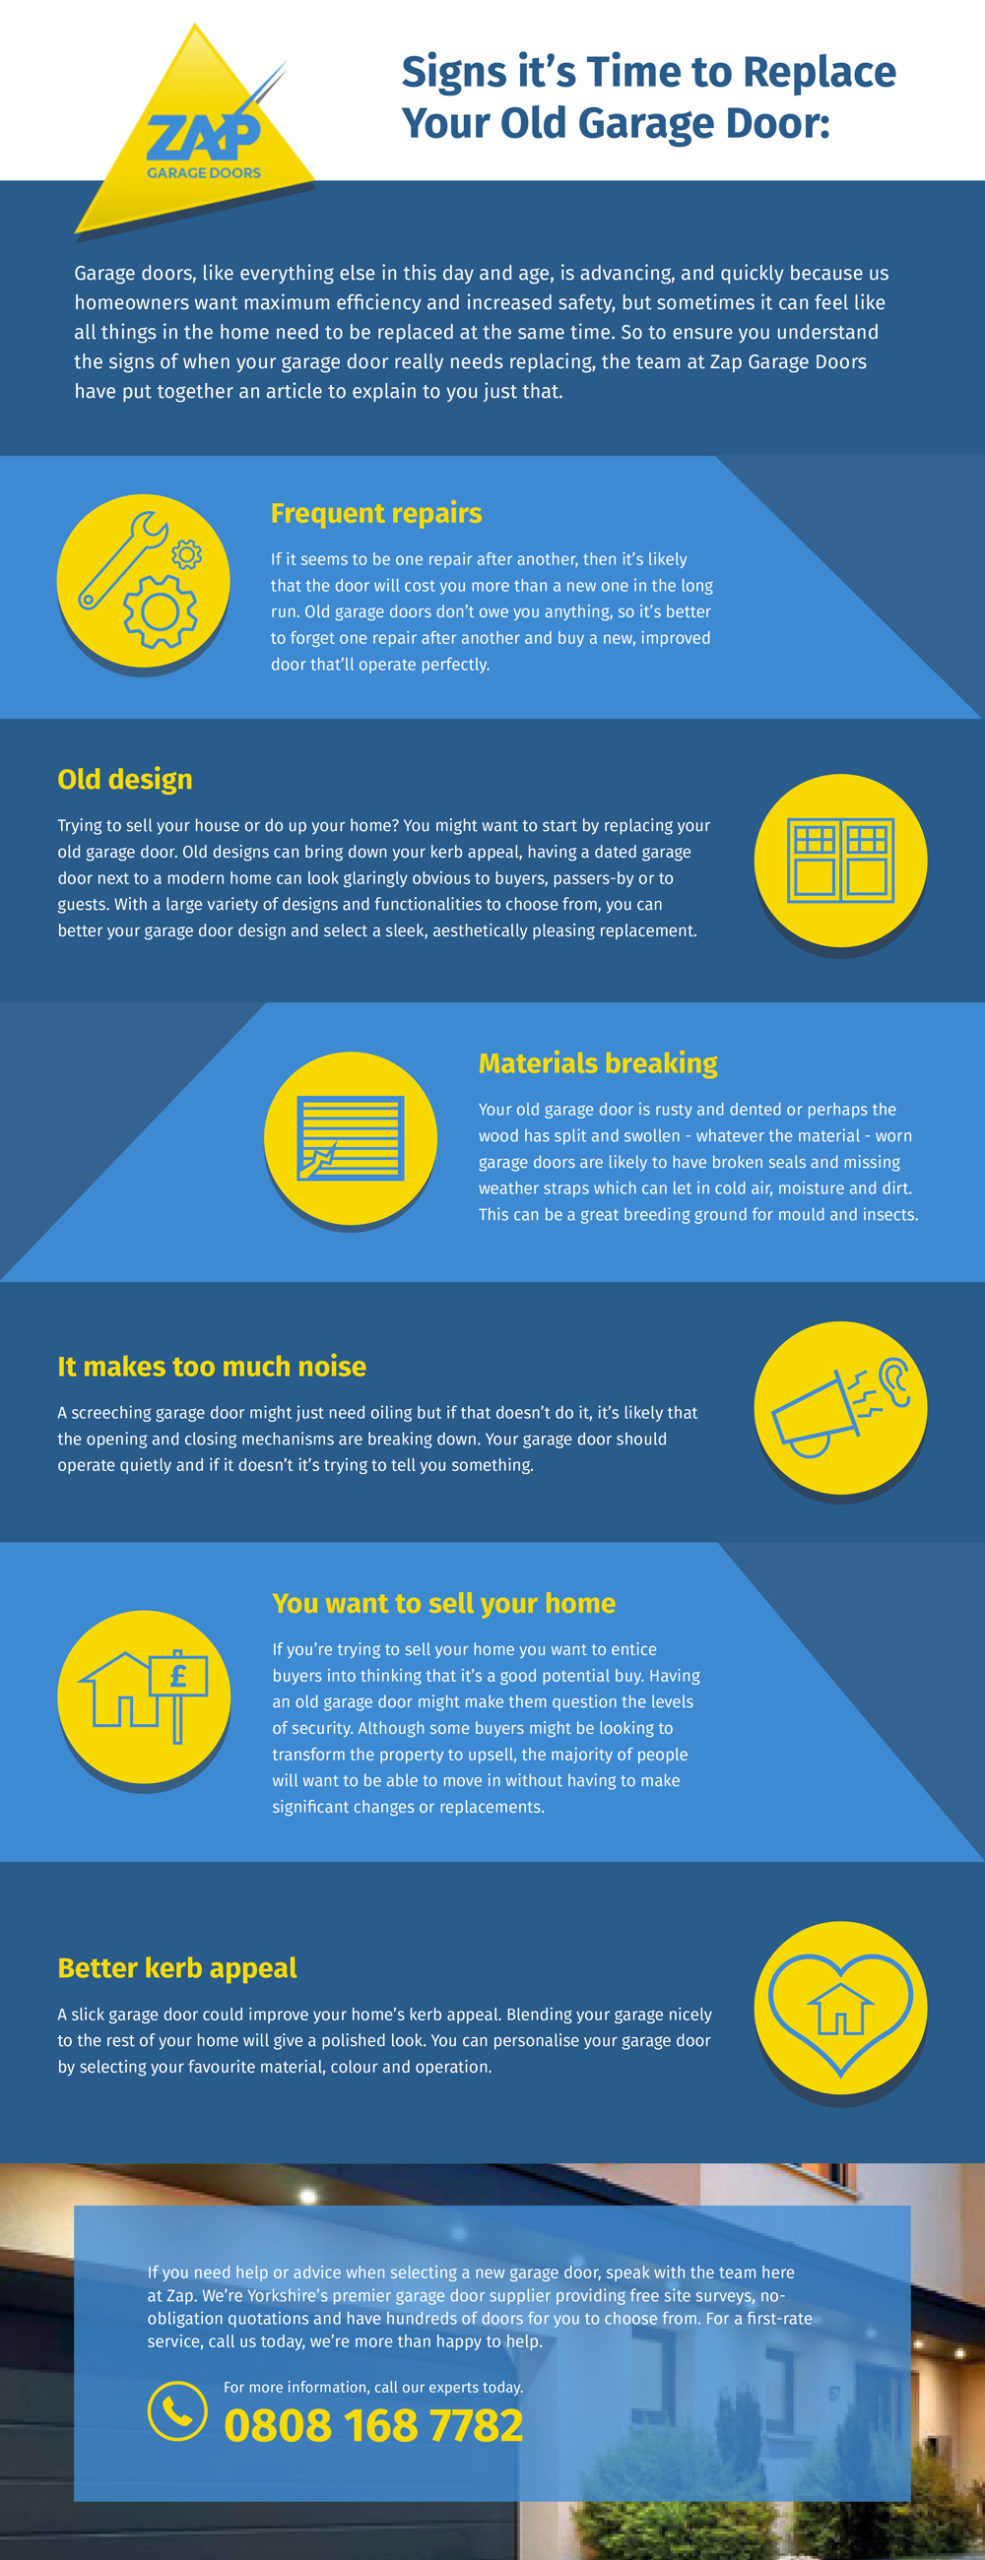 signs it's time to replace your garage door infographic